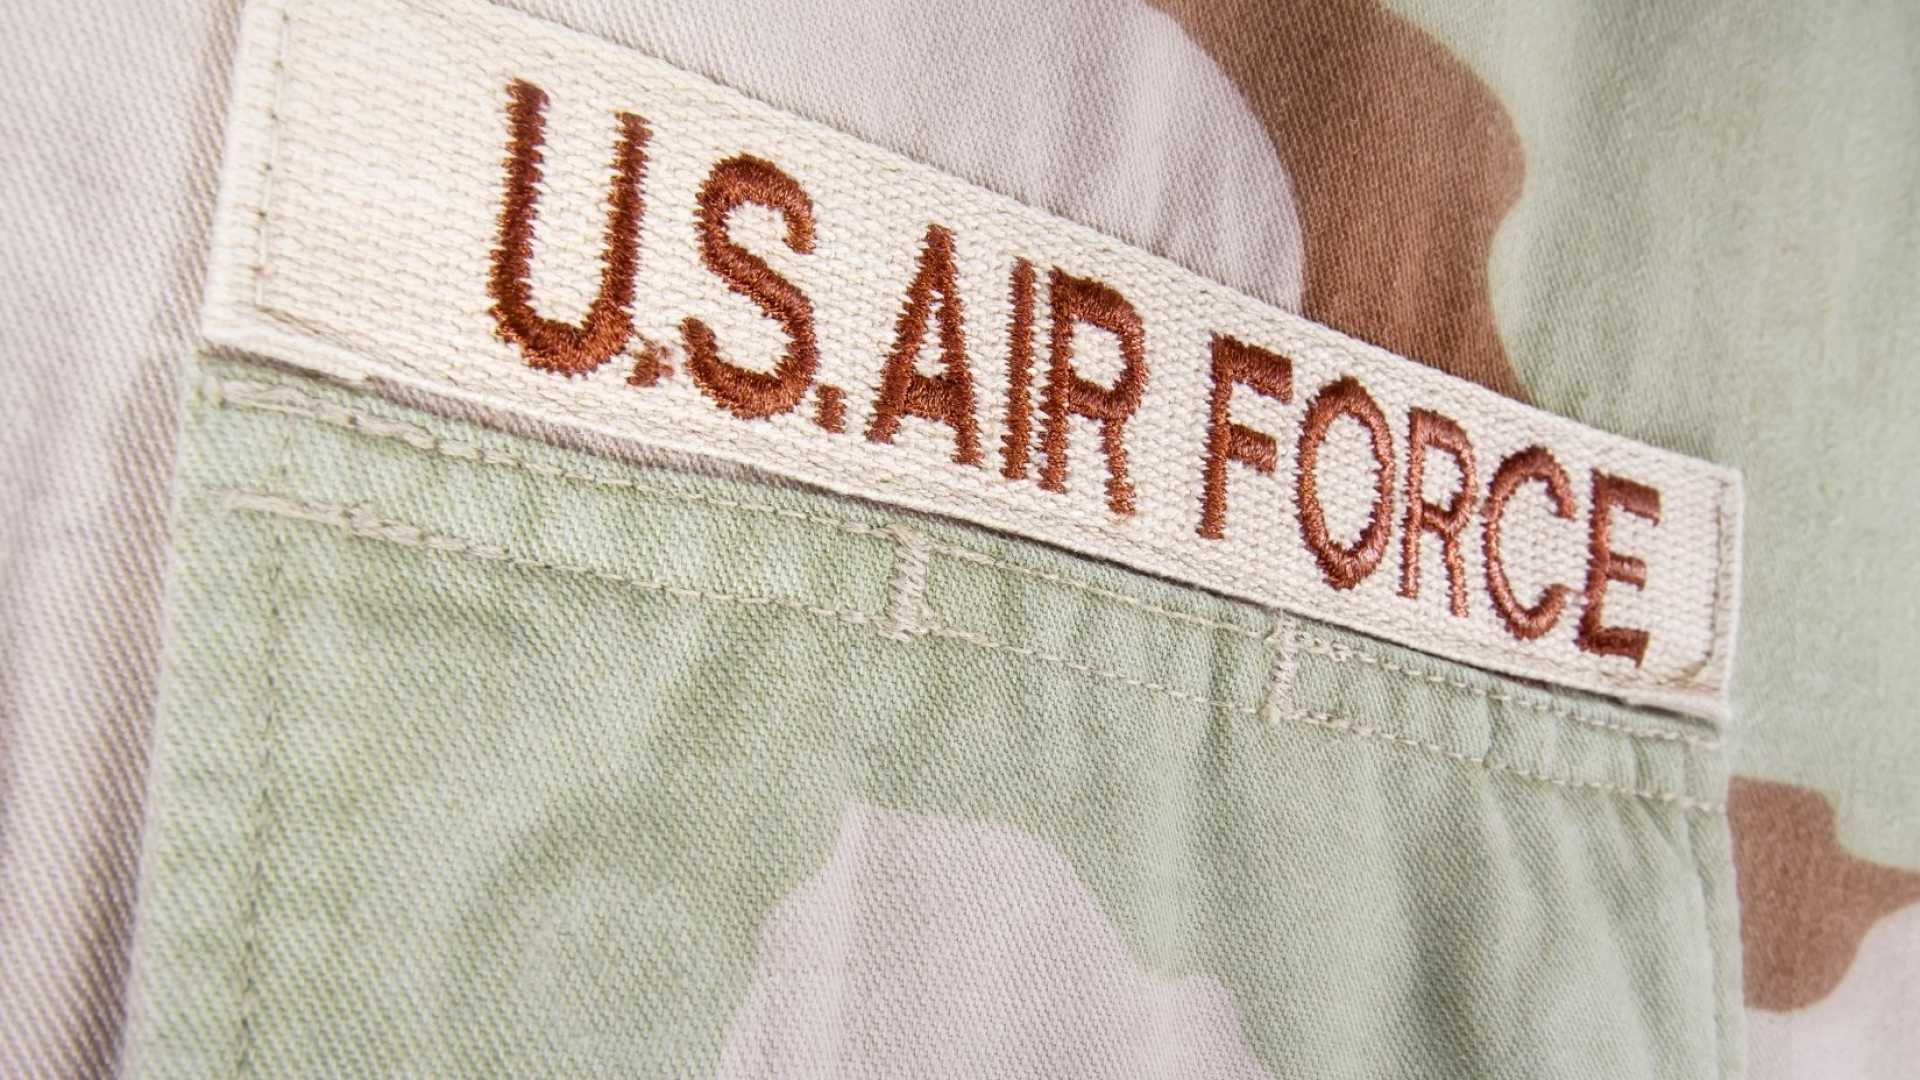 US Air Force Leaks Sensitive Information On 4,000 Officers